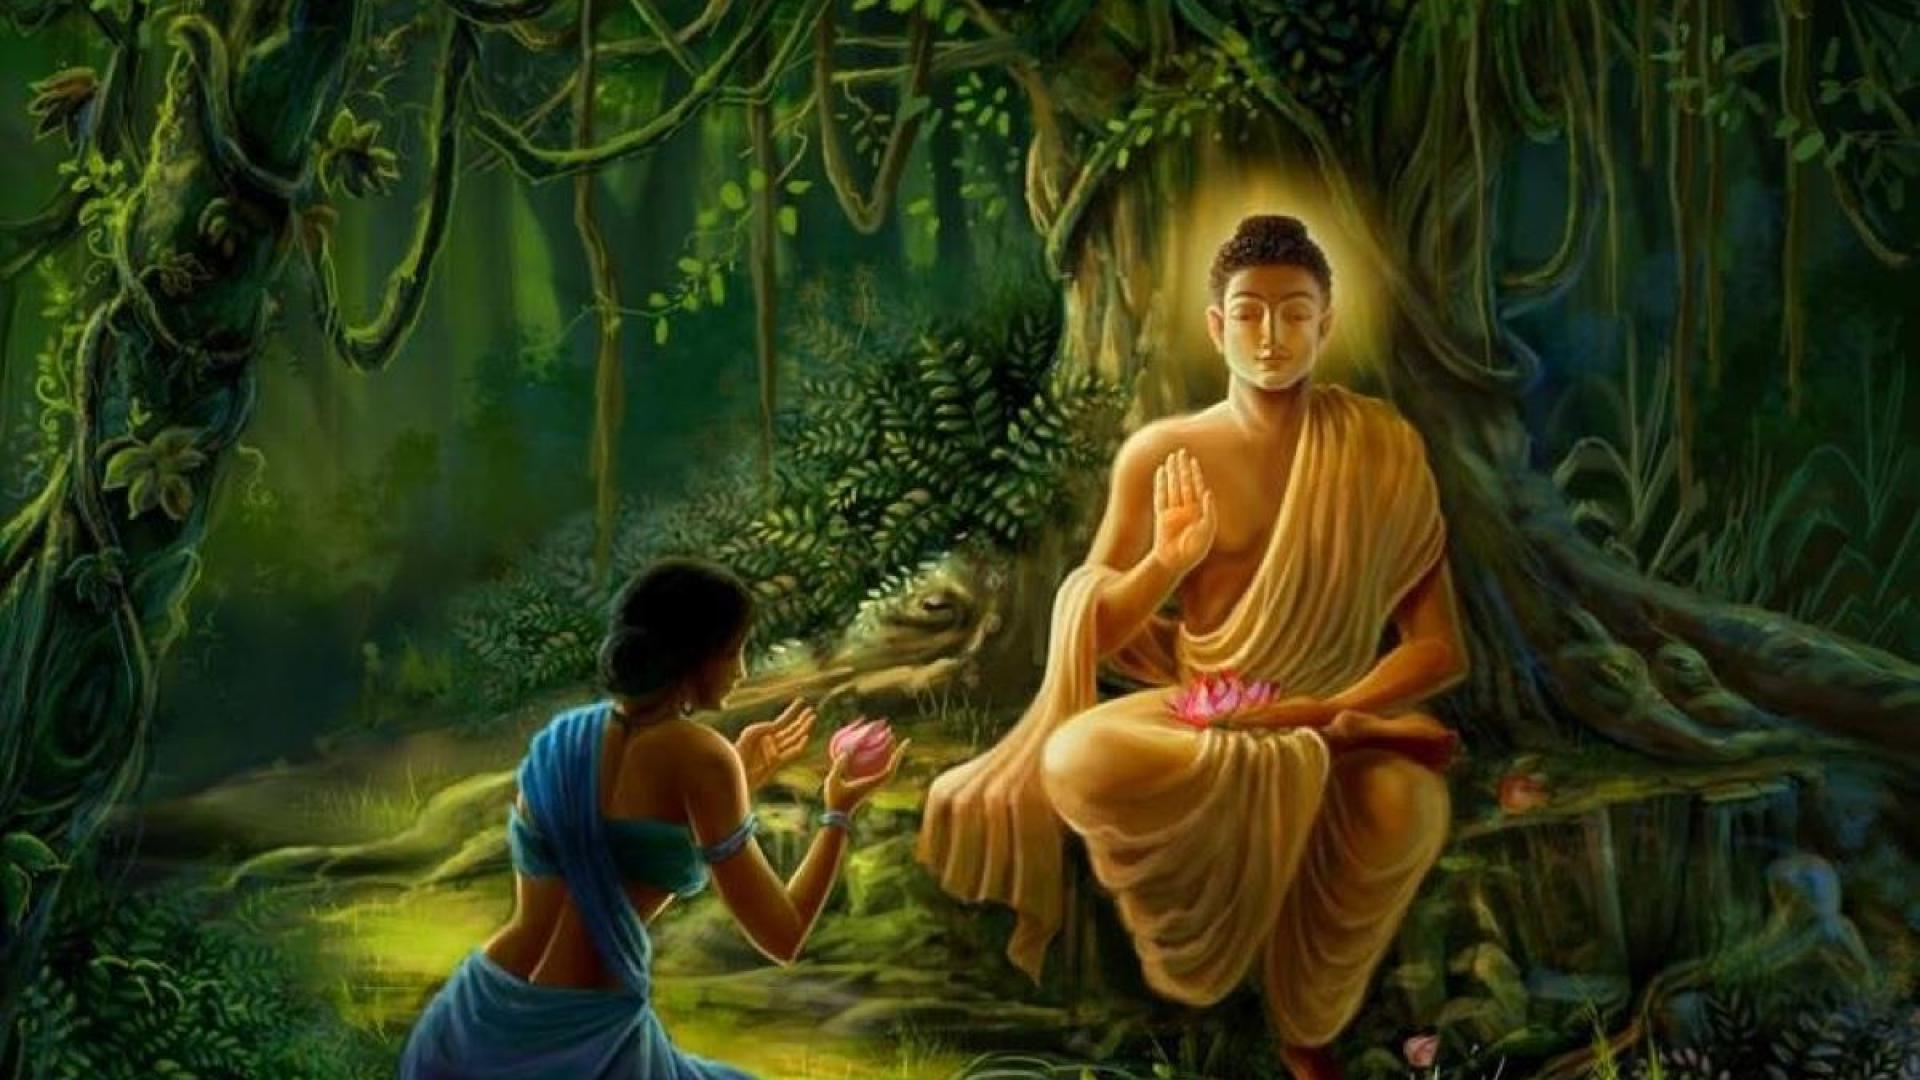 beautiful lord buddha pics images wallpaper for free download